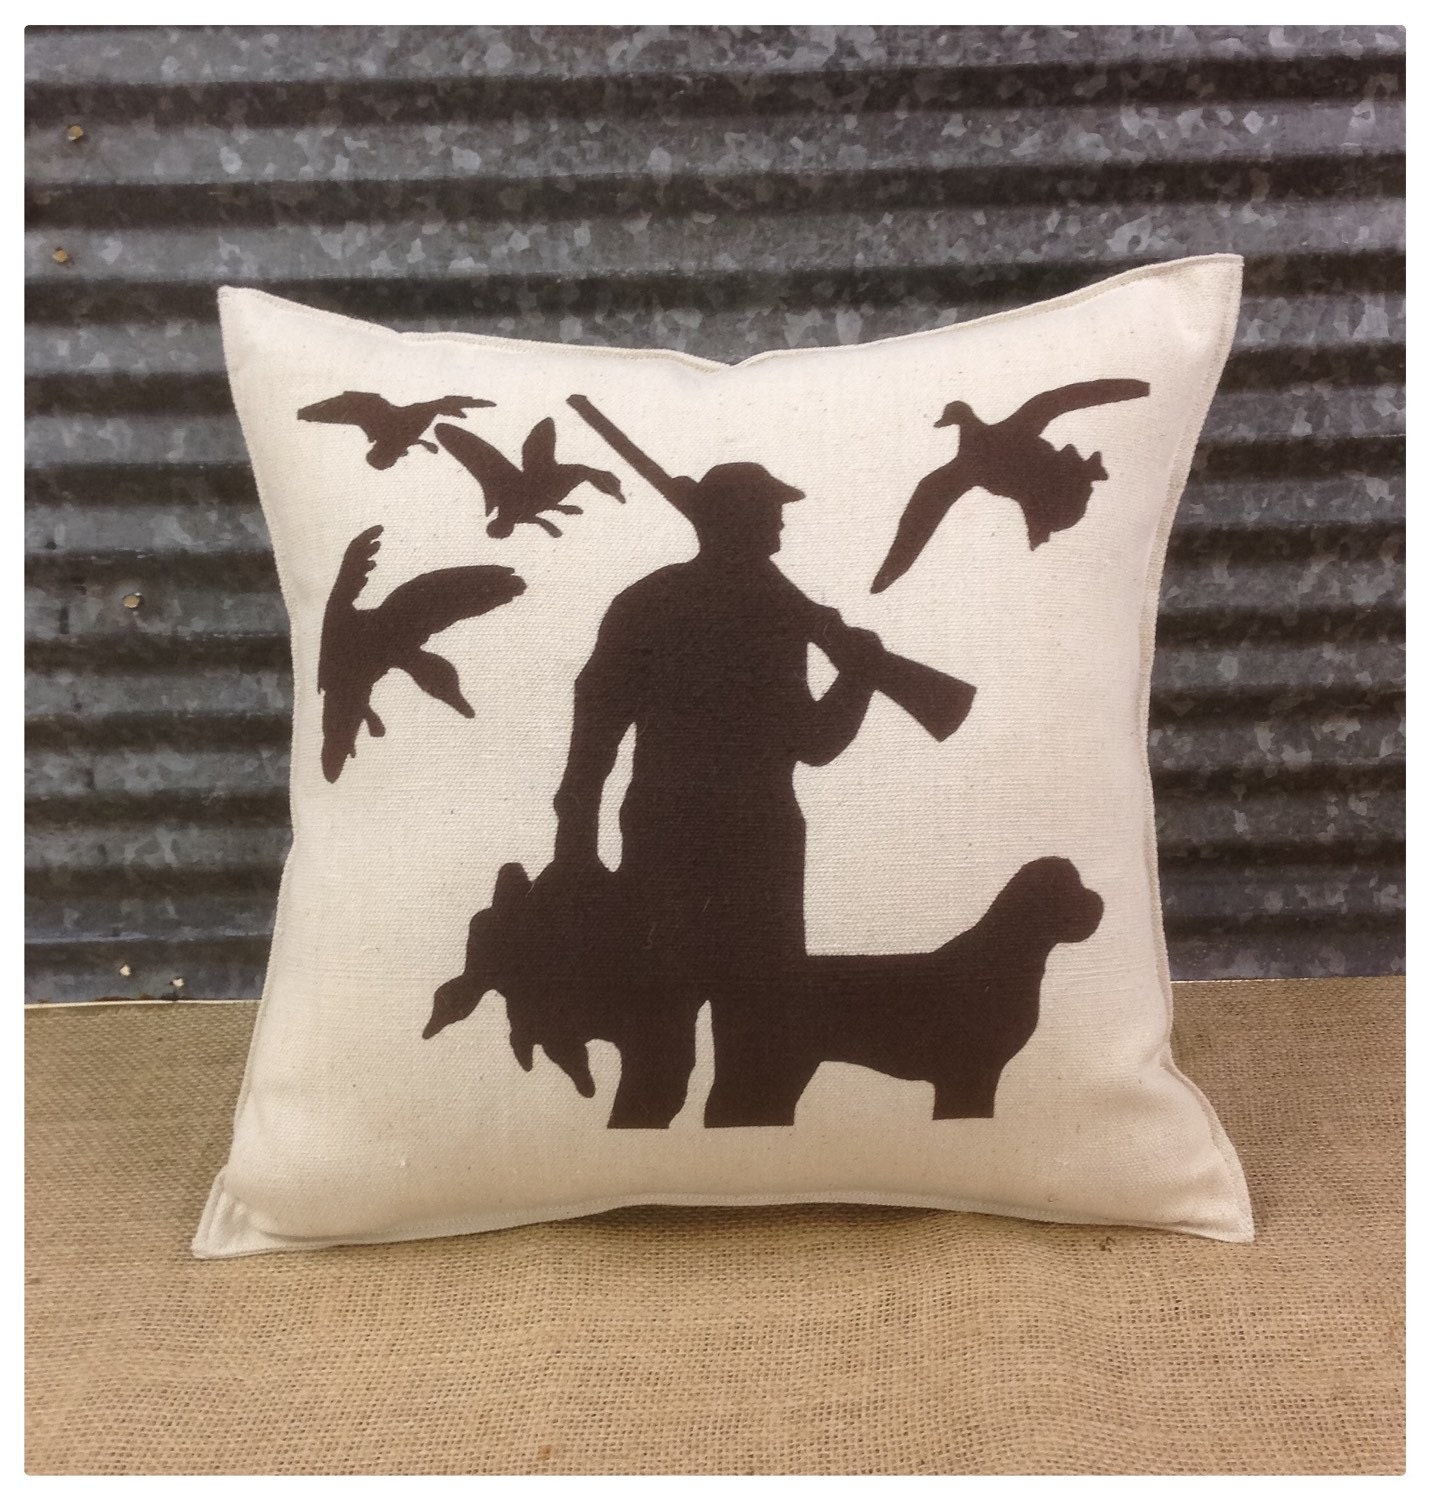 Decorative Pillows Dog : Decorative Pillow with a hunter with his dog and ducks.